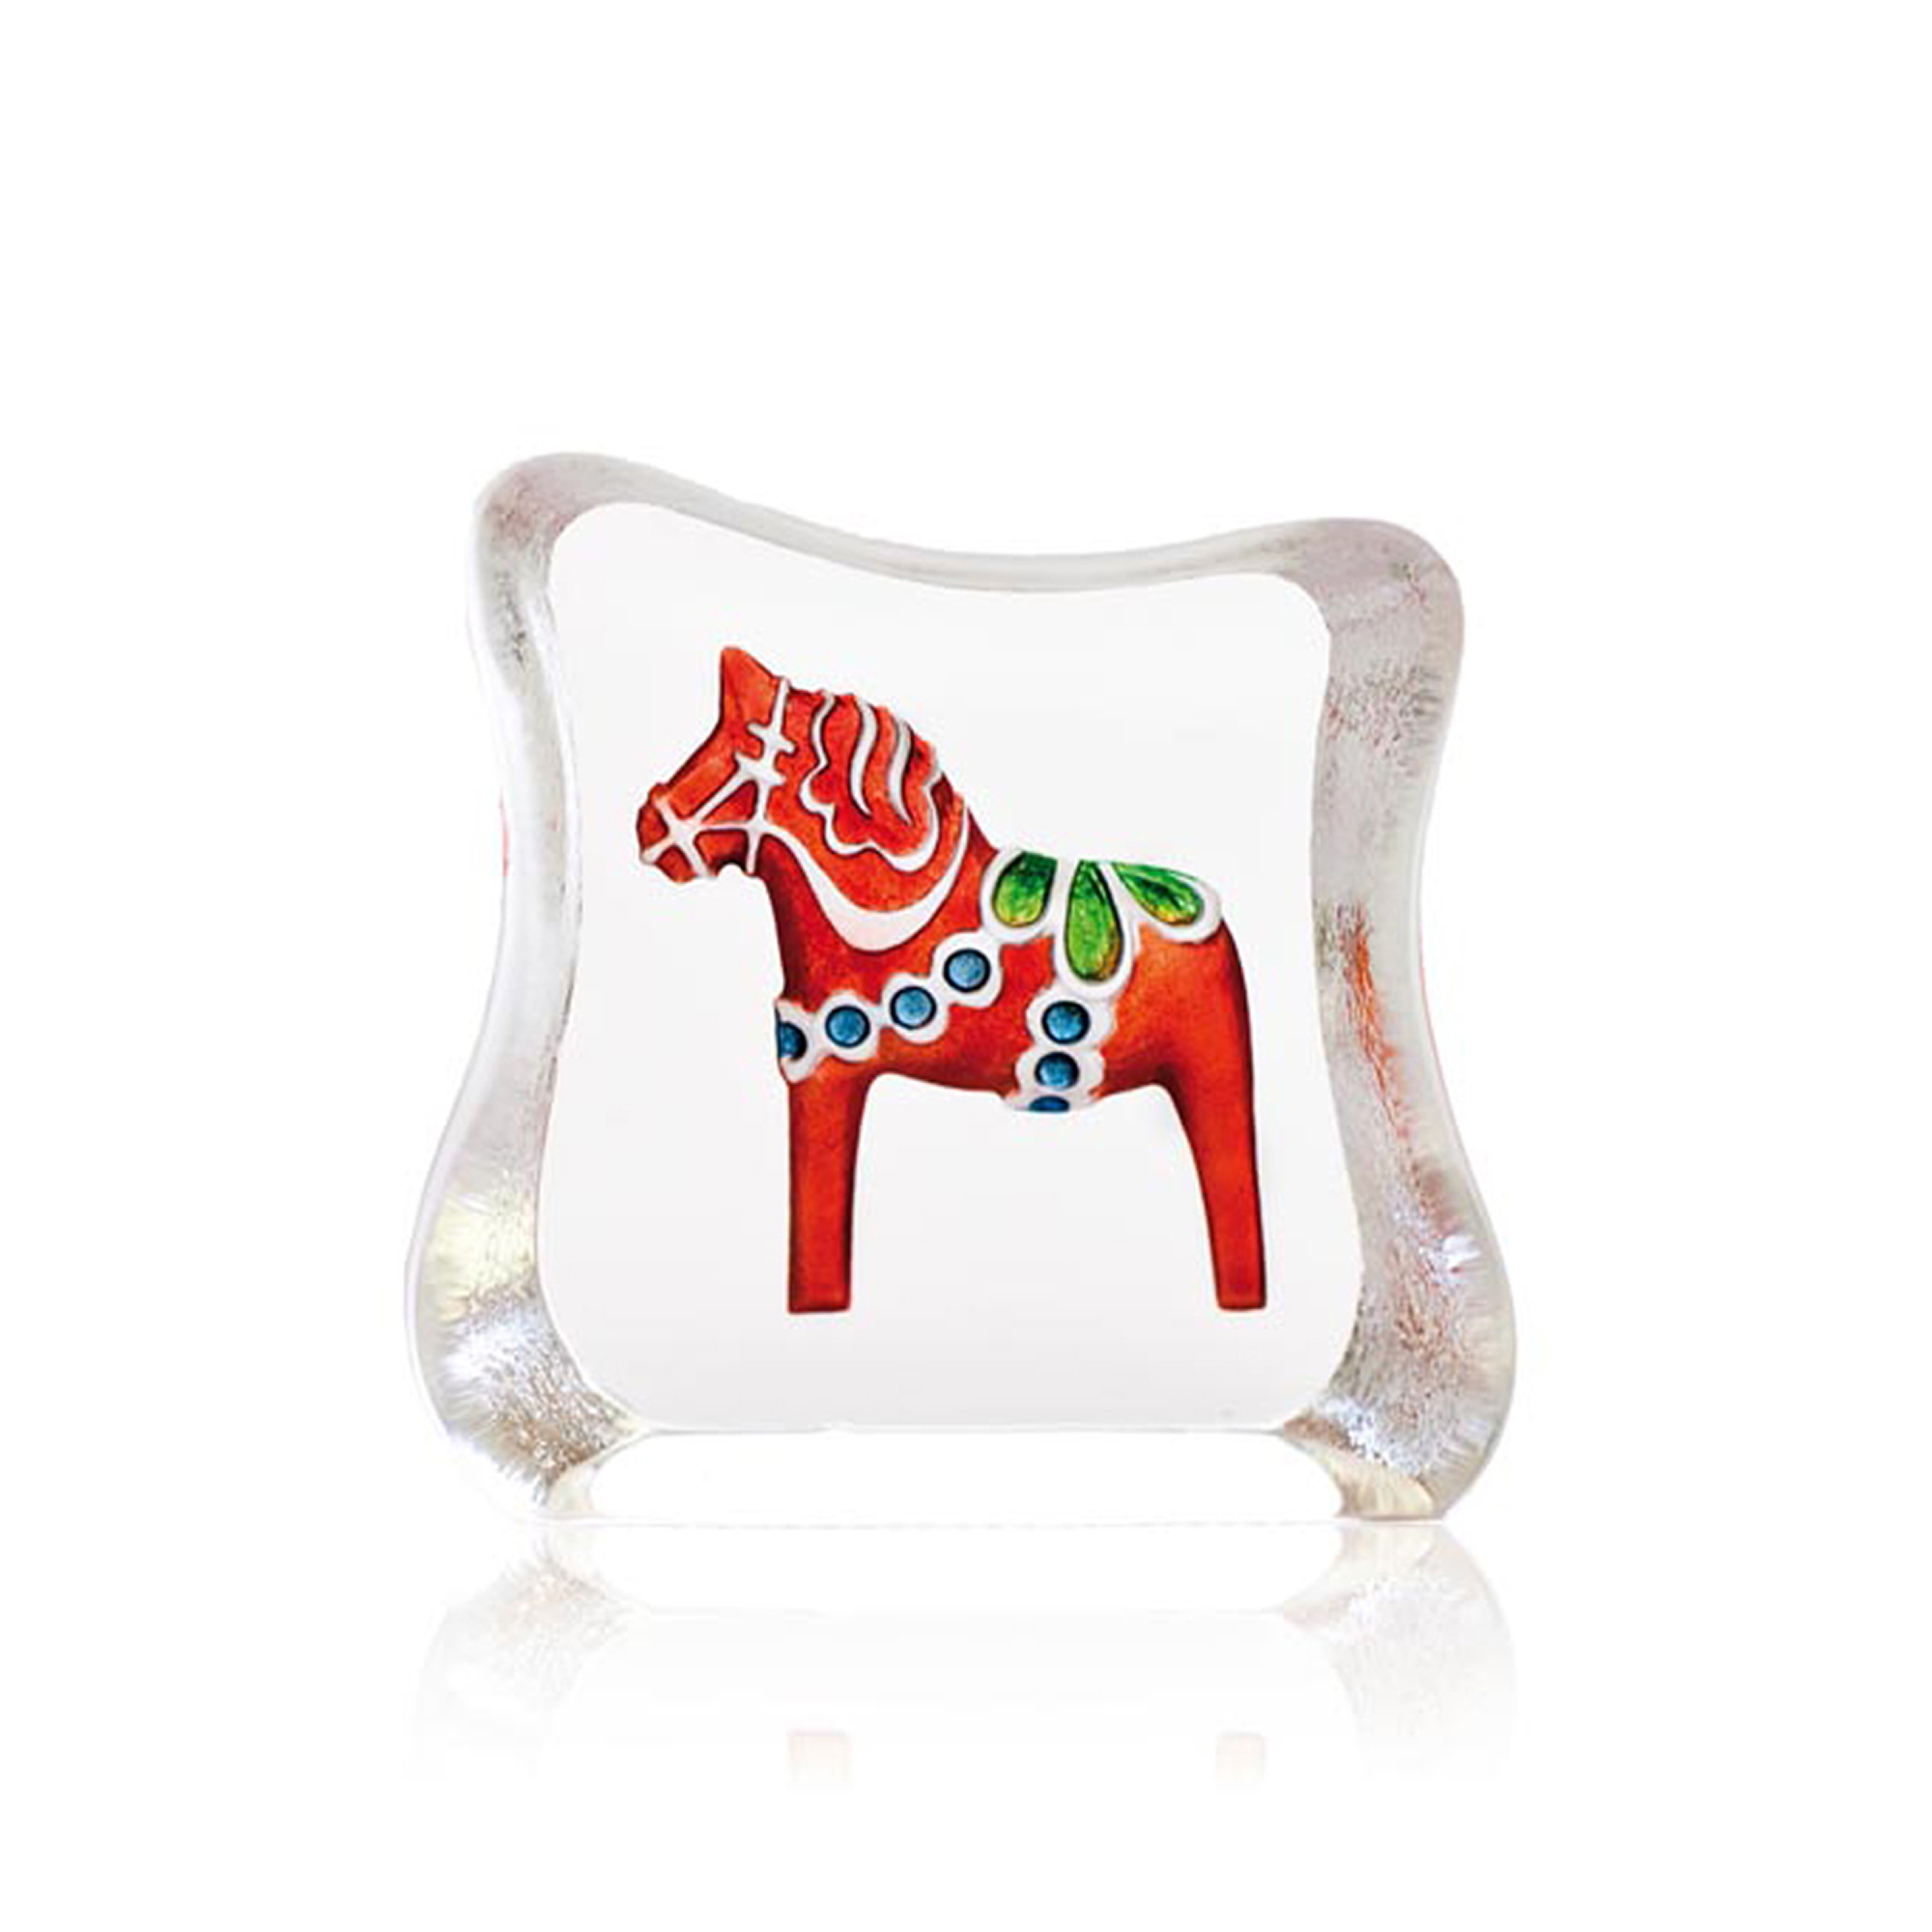 The Dalicarlian horse is a traditional symbol of Sweden. The Dalicarlian horse has its origin in the Swedish province of Dalarna and was first made as a toy for children in the 17th century. Available in Blue or Red.